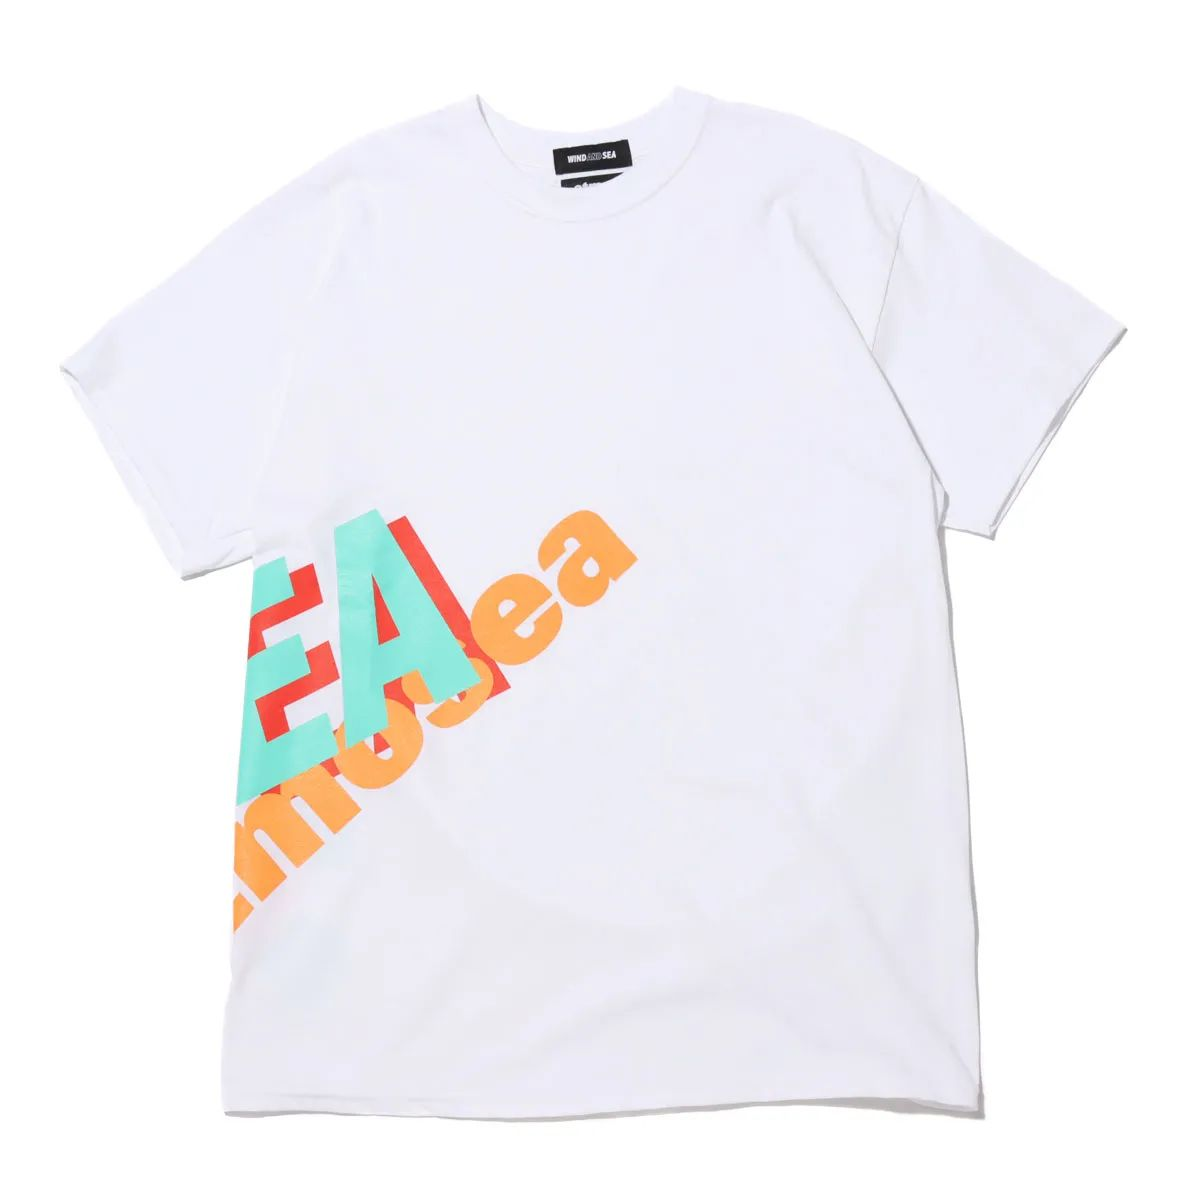 atmos-wind-and-sea-collaboration-tee-release-20200710